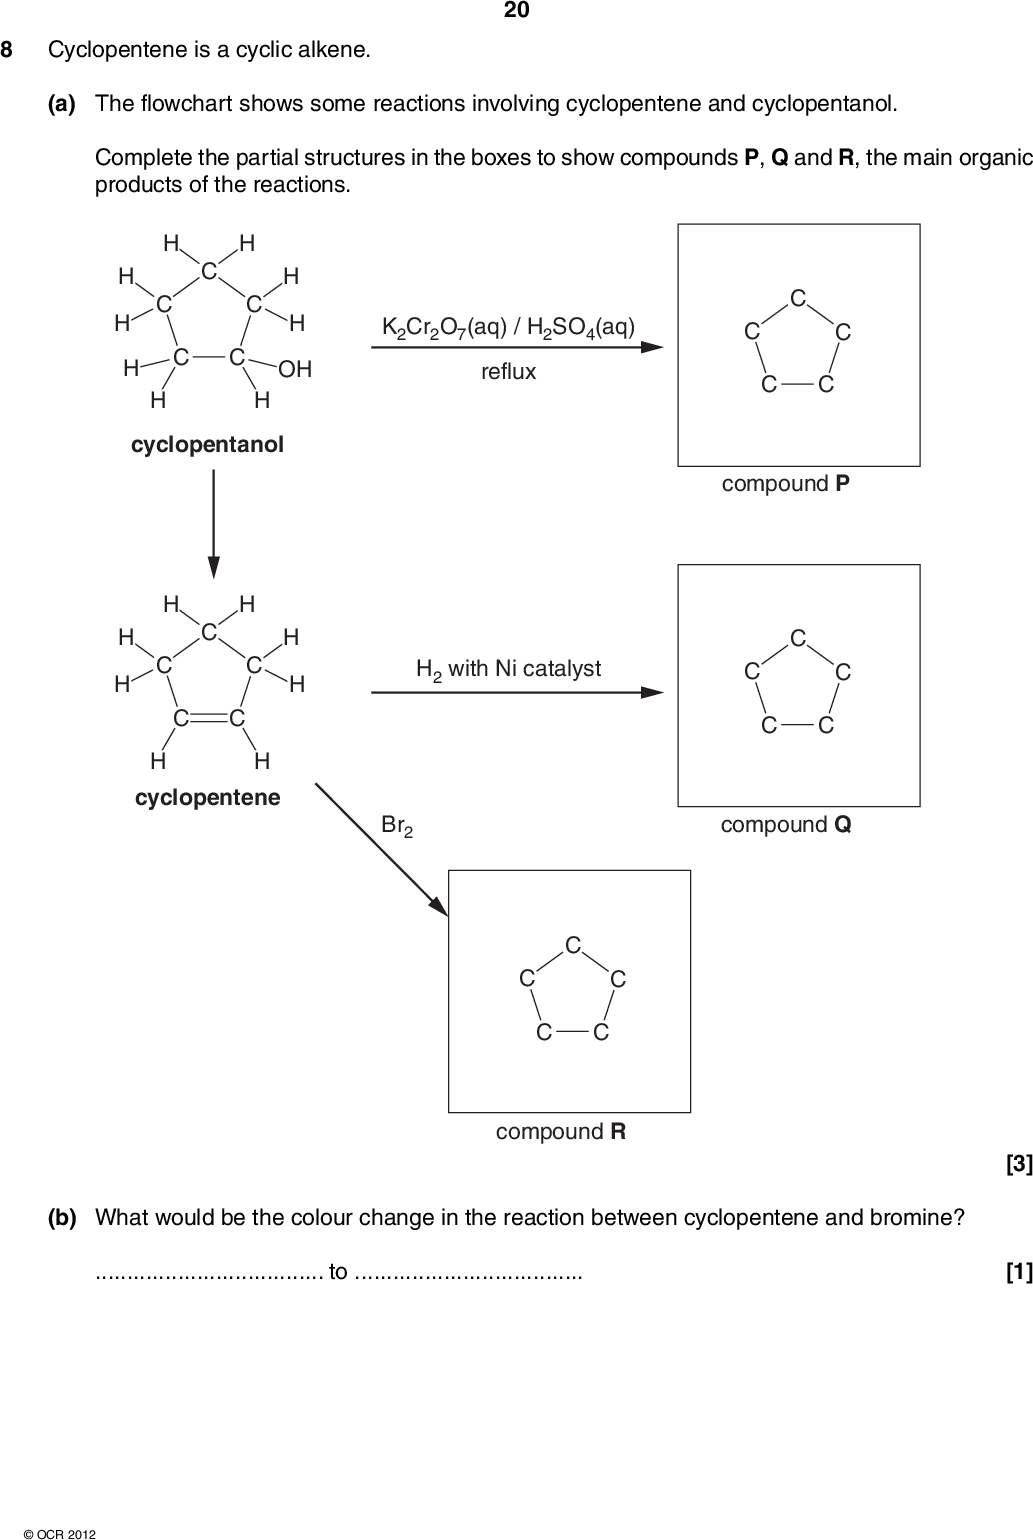 8 Cyclopentene is a cyclic alkene. 20 (a) The flowchart shows some reactions involving cyclopentene and cyclopentanol. Complete the partial structures in the boxes to show compounds P, Q and R, the main organic products of the reactions. OH cyclopentanol H cyclopentene K2Cr2O7(aq) / H2SO4(aq) reflux H2 with Ni catalyst compound P Br2 compound Q compound R (b) What would be the colour change in the reaction between cyclopentene and bromine?to[3] [1]OCR 2012<br />  (c) Cyclopentene can be polymerised to give poly(cyclopentene). Draw a section of poly(cyclopentene) to show two repeat units. 21 (d) Cyclopentene reacts with HCl by electrophilic addition. Use the curly arrow model to complete the mechanism for this reaction. In your answer include any relevant dipoles, the intermediate and the product. [1] CH2 H2C CH2 Cl intermediate TURN OVER FOR QUESTION 8(e)OCR 2012 product [5] Turn over<br />  22 (e) Chlorocyclopentane can be hydrolysed by heating with aqueous sodium hydroxide. CH2 H2C CH2 H2C CHCl NaOH CH2 H2C CH2 H2C CHOH NaCl Use the curly arrow model to complete the mechanism for this hydrolysis reaction. Include in your answer, relevant dipoles, the name of the mechanism and the type of bond fission. In your answer you should use the correct technical terms, spelled correctly. CH2 H2C CH2 H2C Cl CH2 H2C CH2 H2C CHOHHO products name of mechanismtype of bond fission[5] [Total: 15] END OF QUESTION PAPEROCR 2012<br />